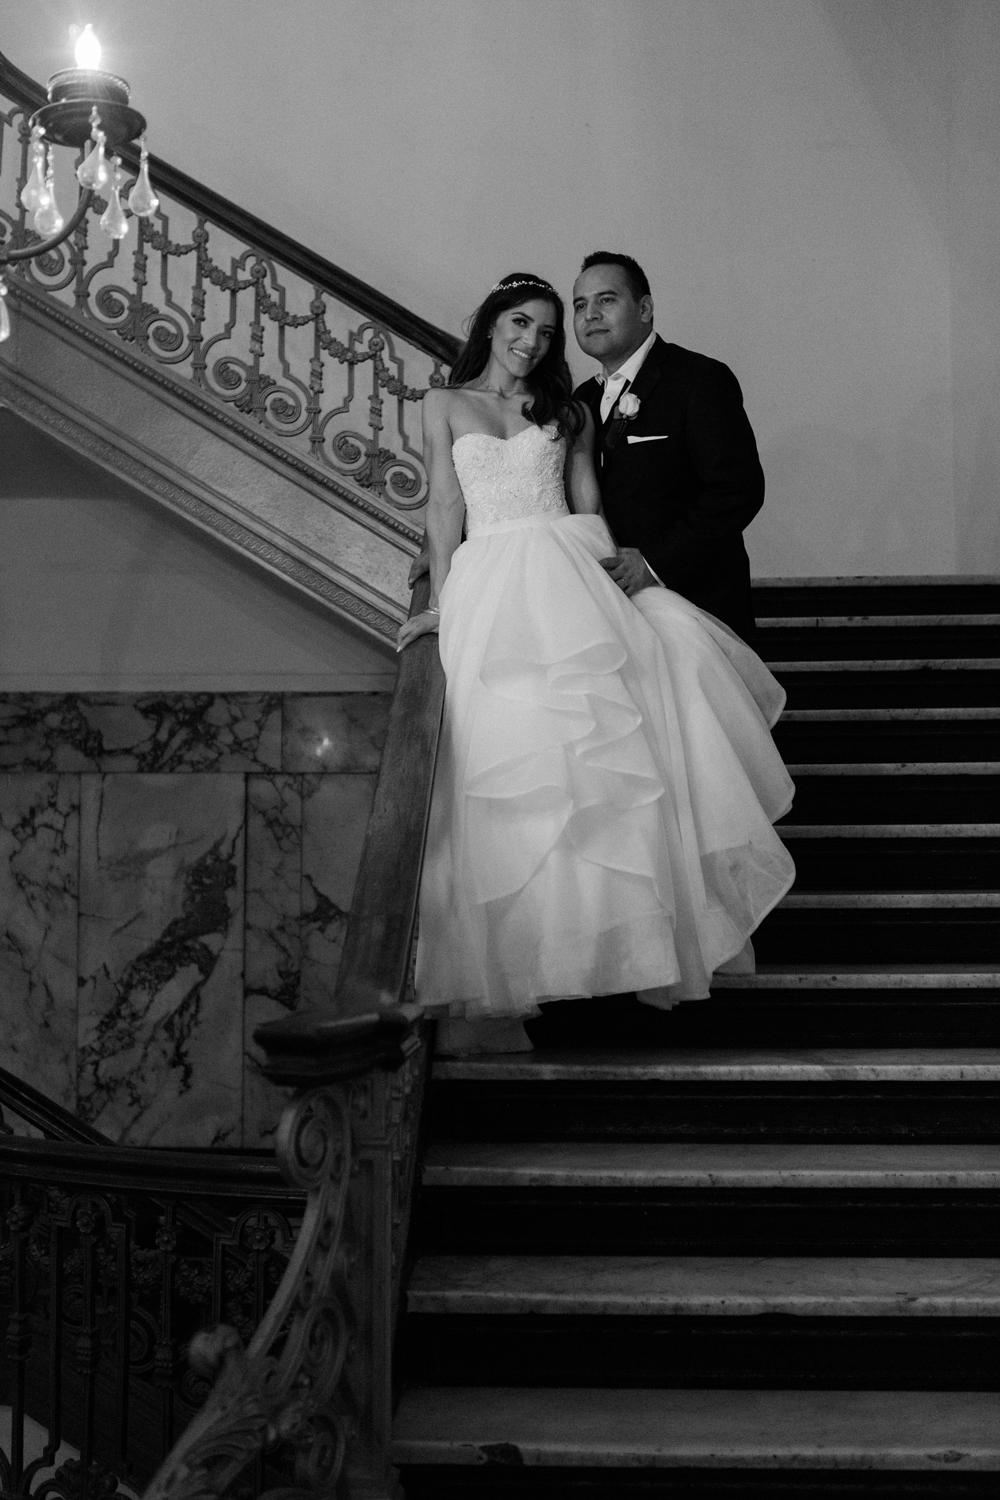 e3610-pretty-in-pink-vintage-hollywood-fiesta-wedding-alexandria-ballroom-bride-and-groom-ornate-staircase.jpg